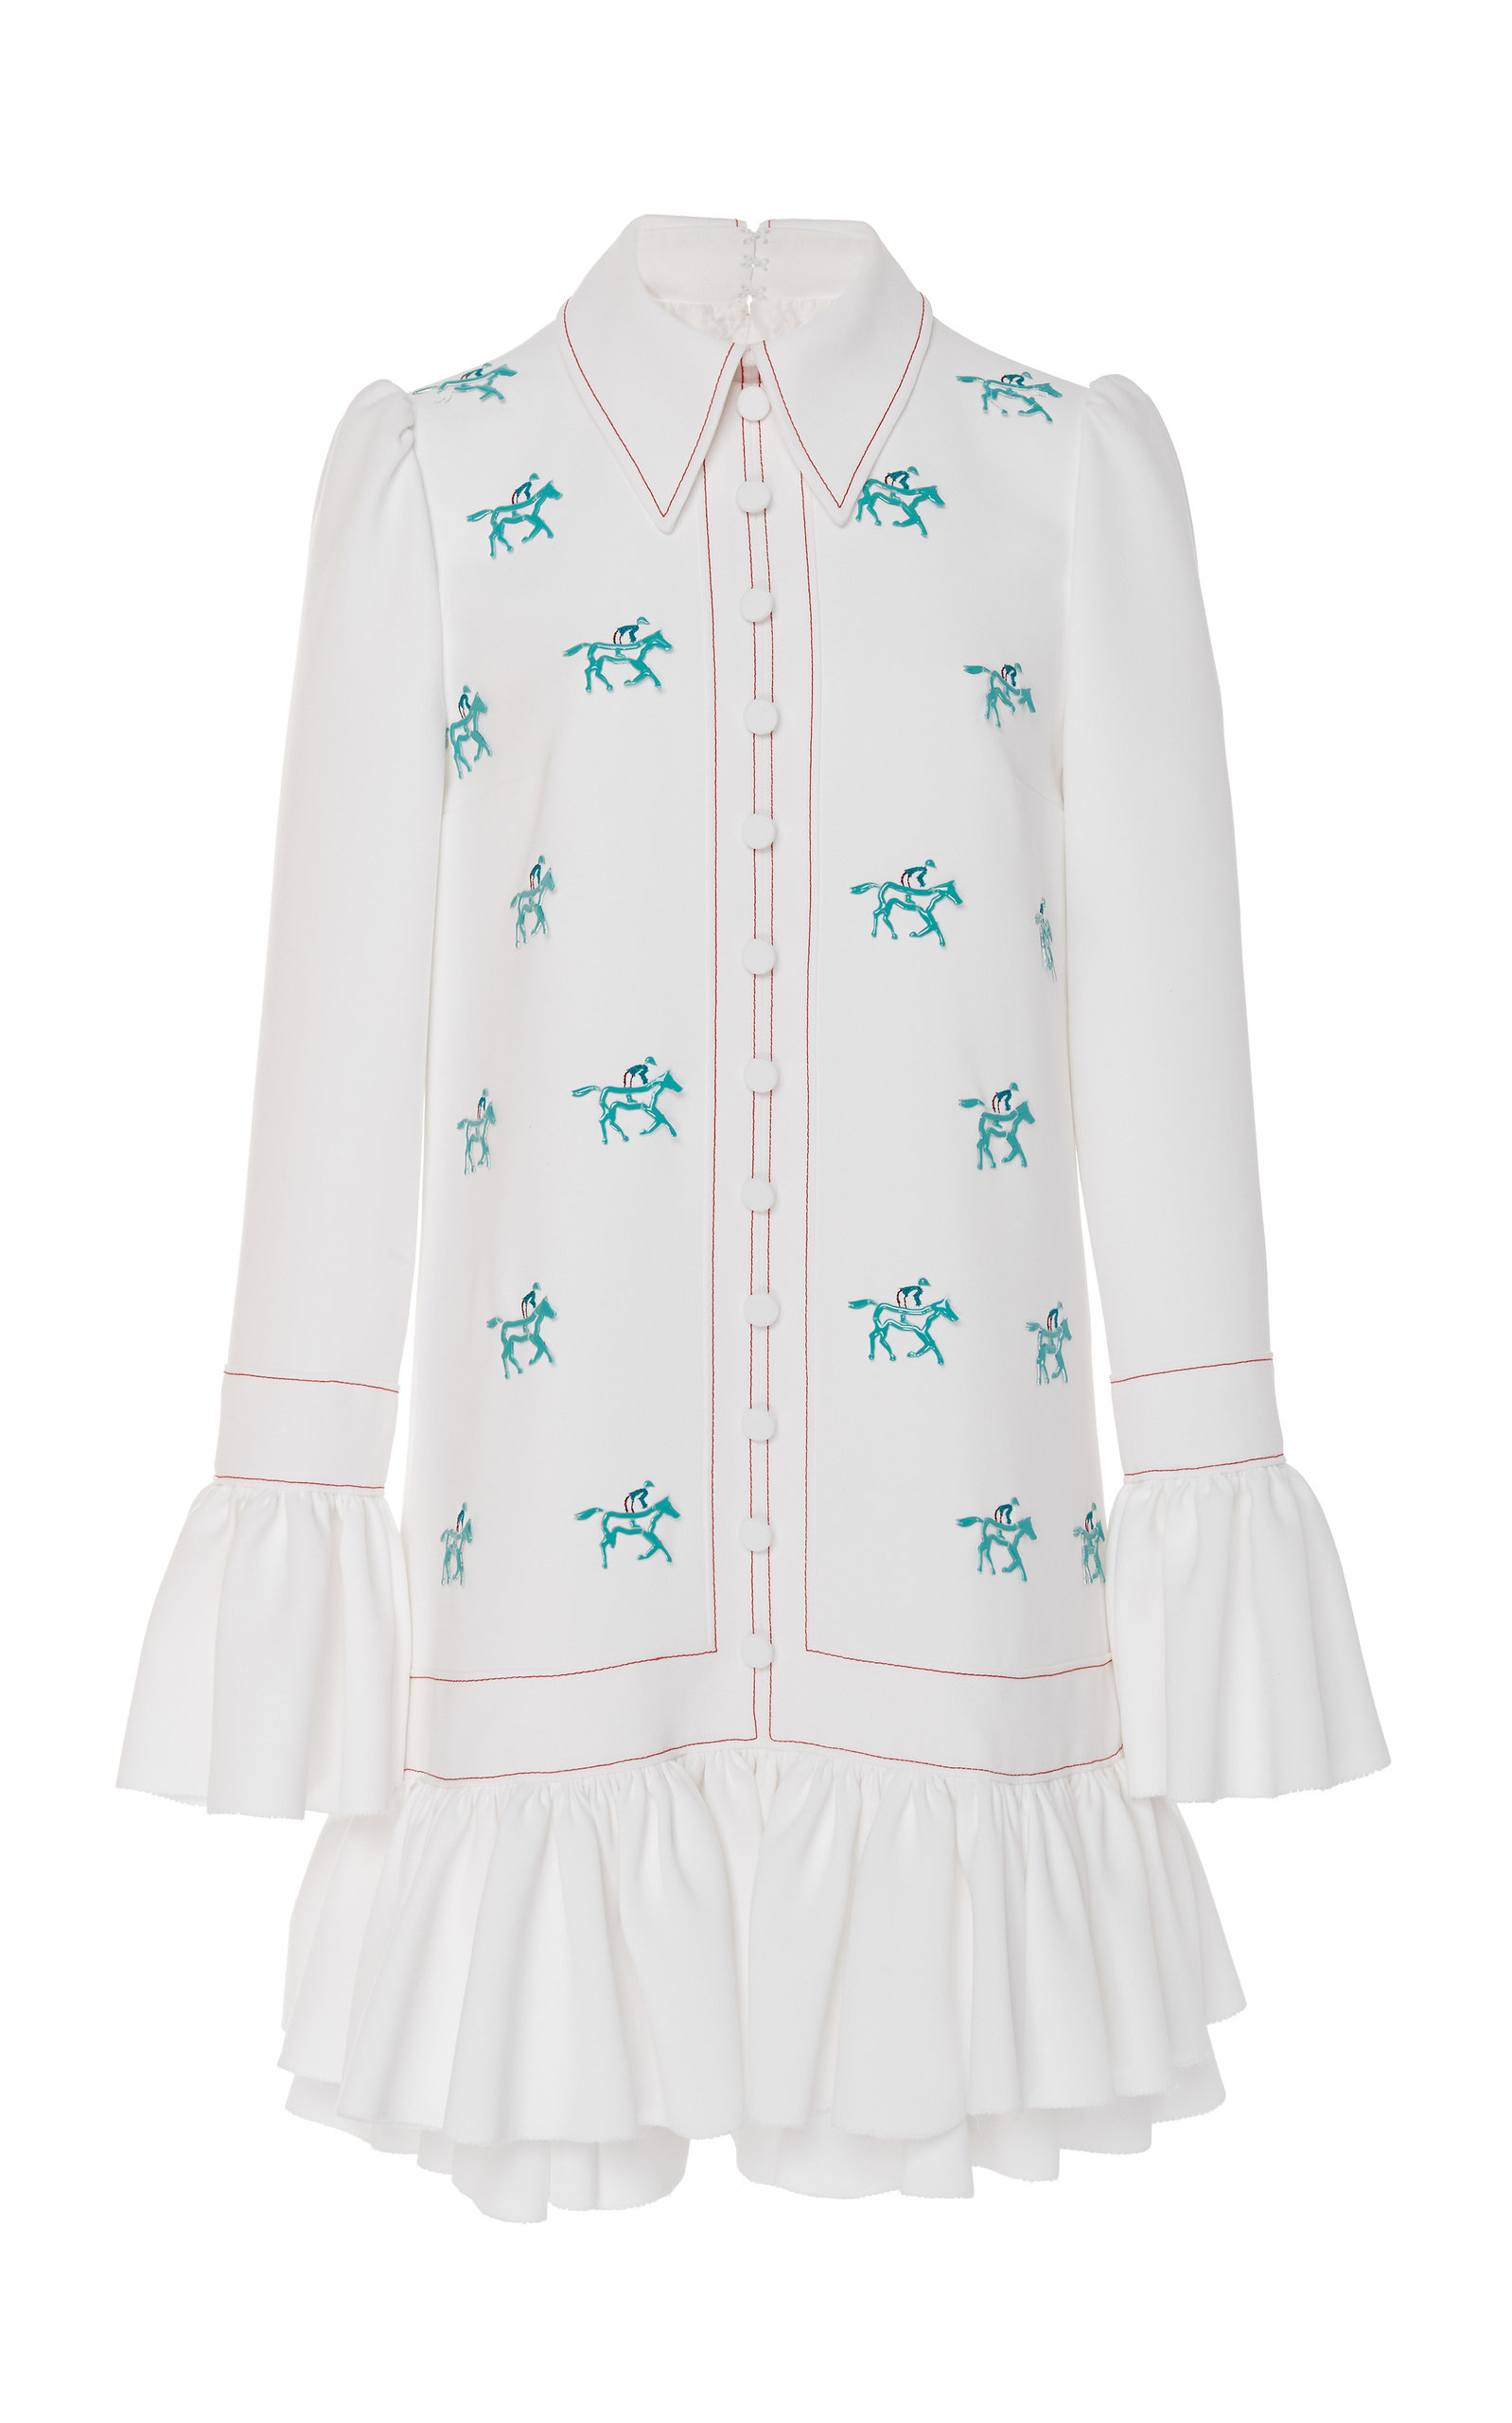 Carolina Herrera LONG-SLEEVE EMBROIDERED MINI DRESS